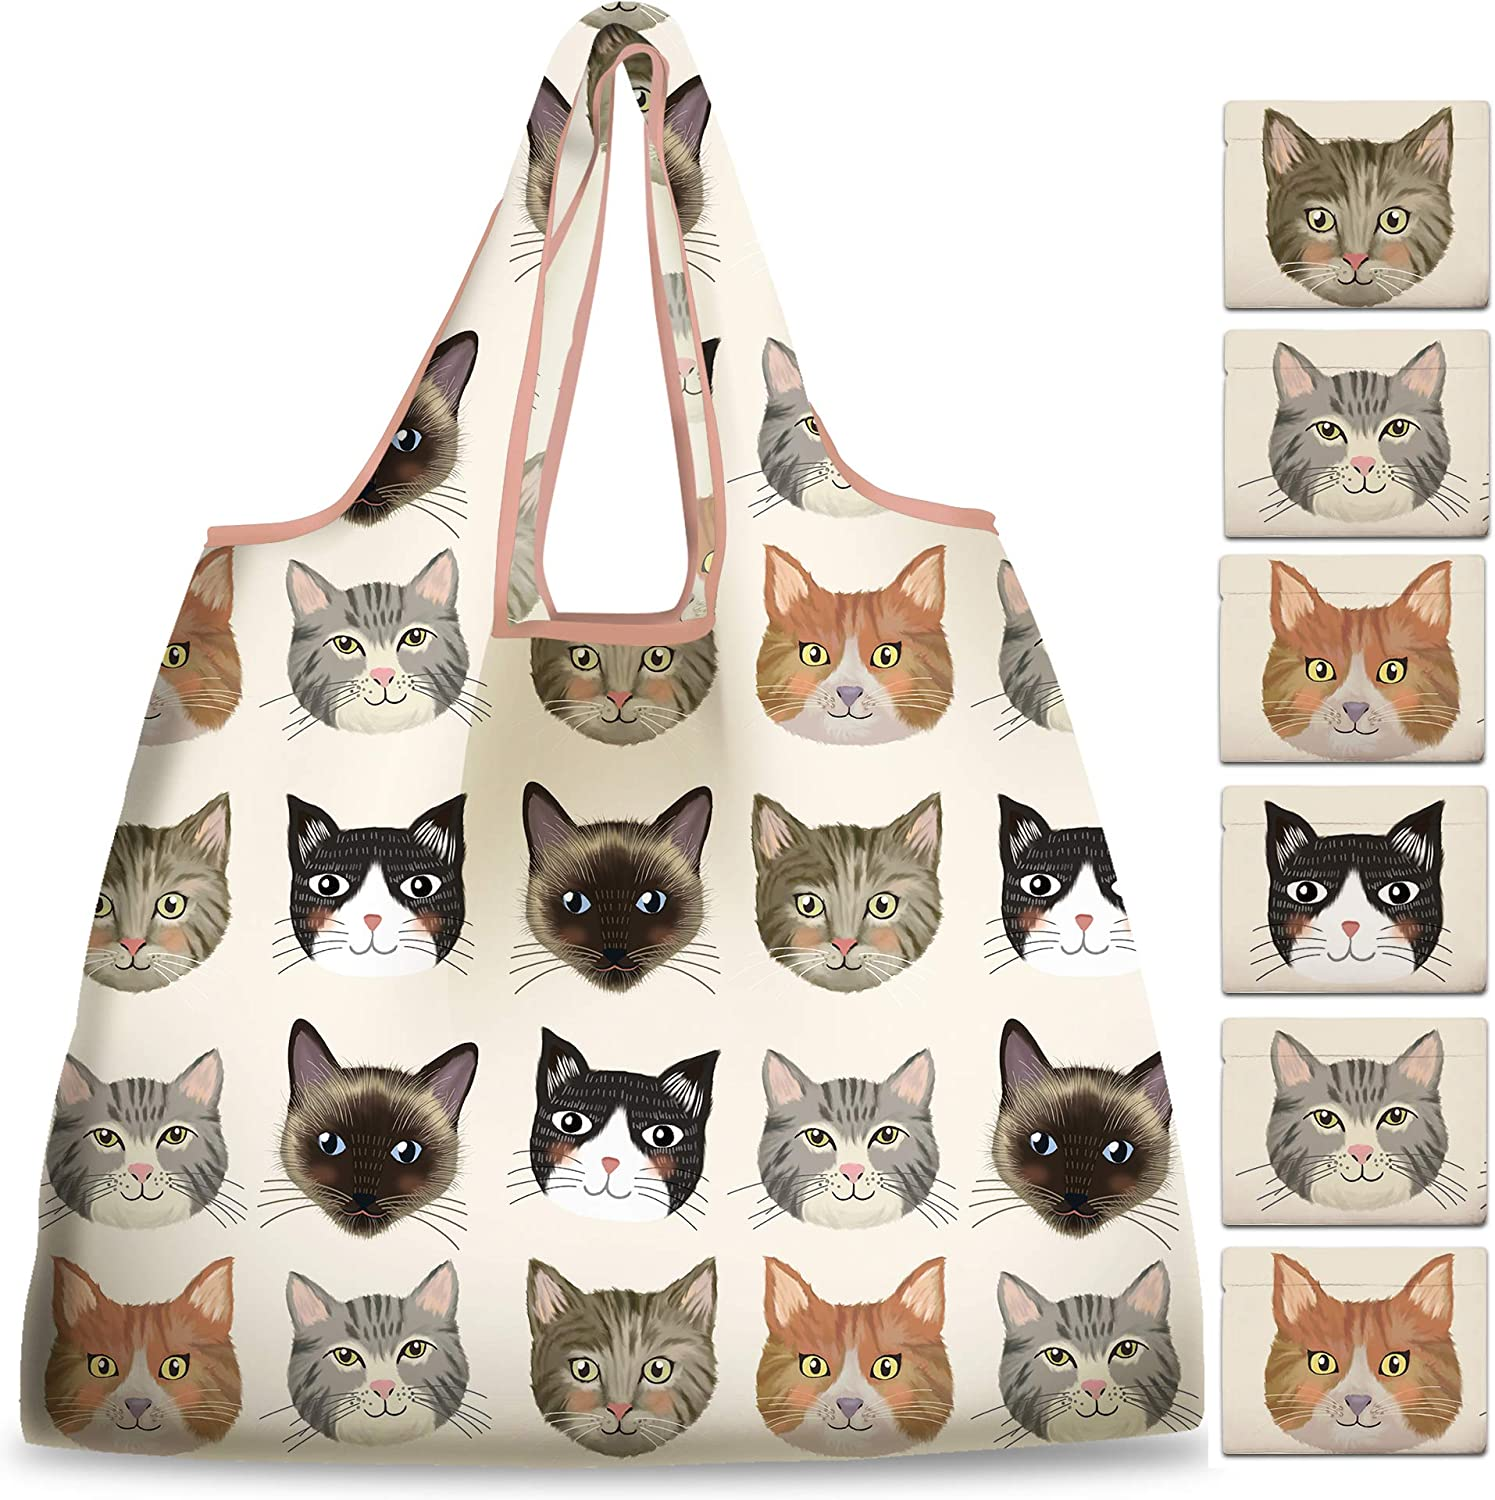 NymphFable 6 Pack Grocery Bags Reusable Cute Cat Animal Shopping Bags Washable Foldable Waterproof Eco Friendly 50LBS